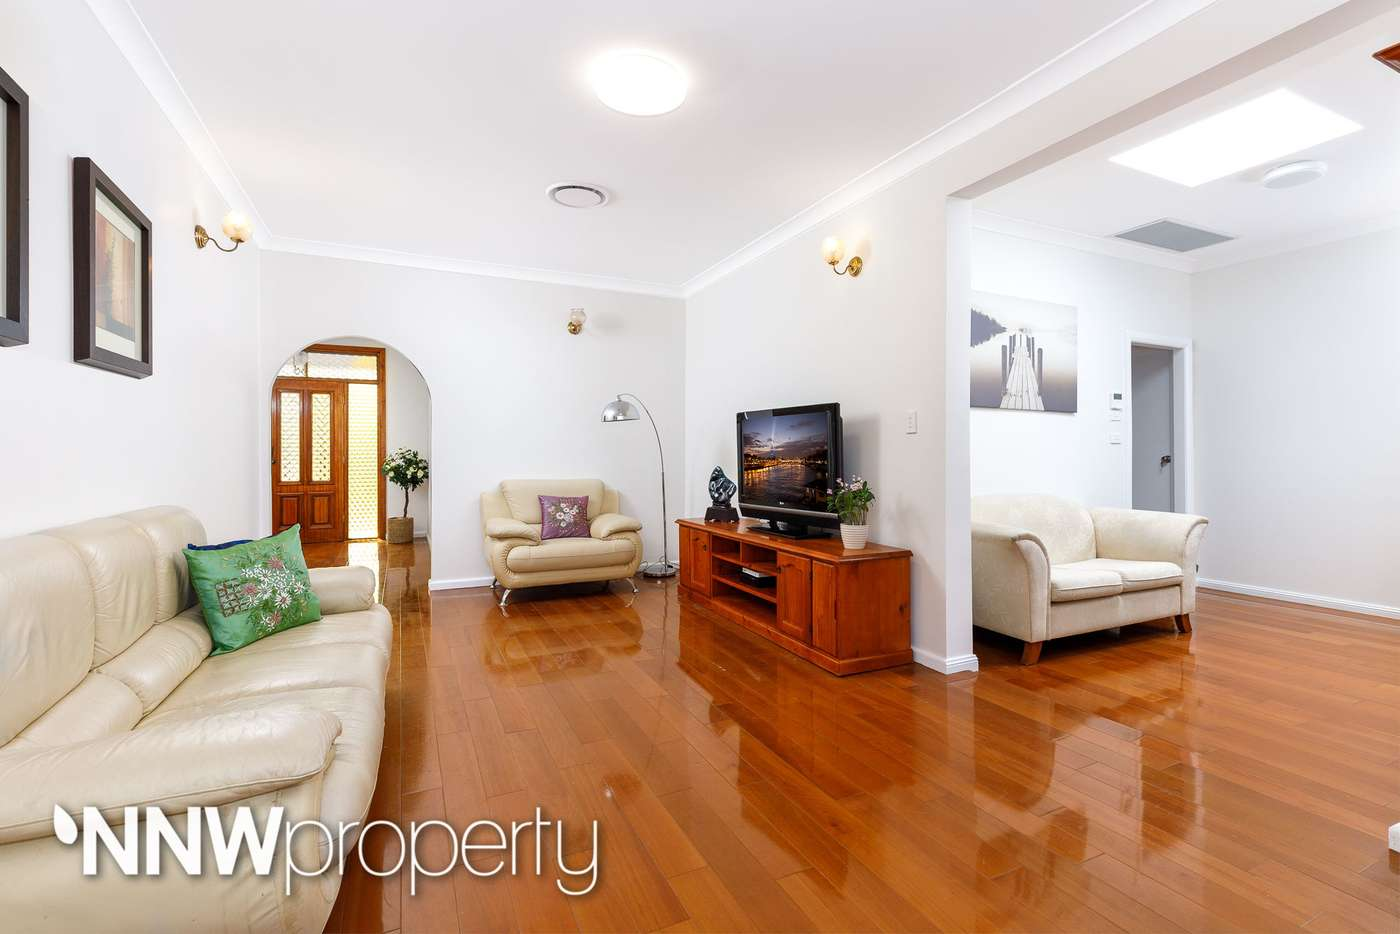 Main view of Homely house listing, 7 Alexander Street, Dundas Valley NSW 2117